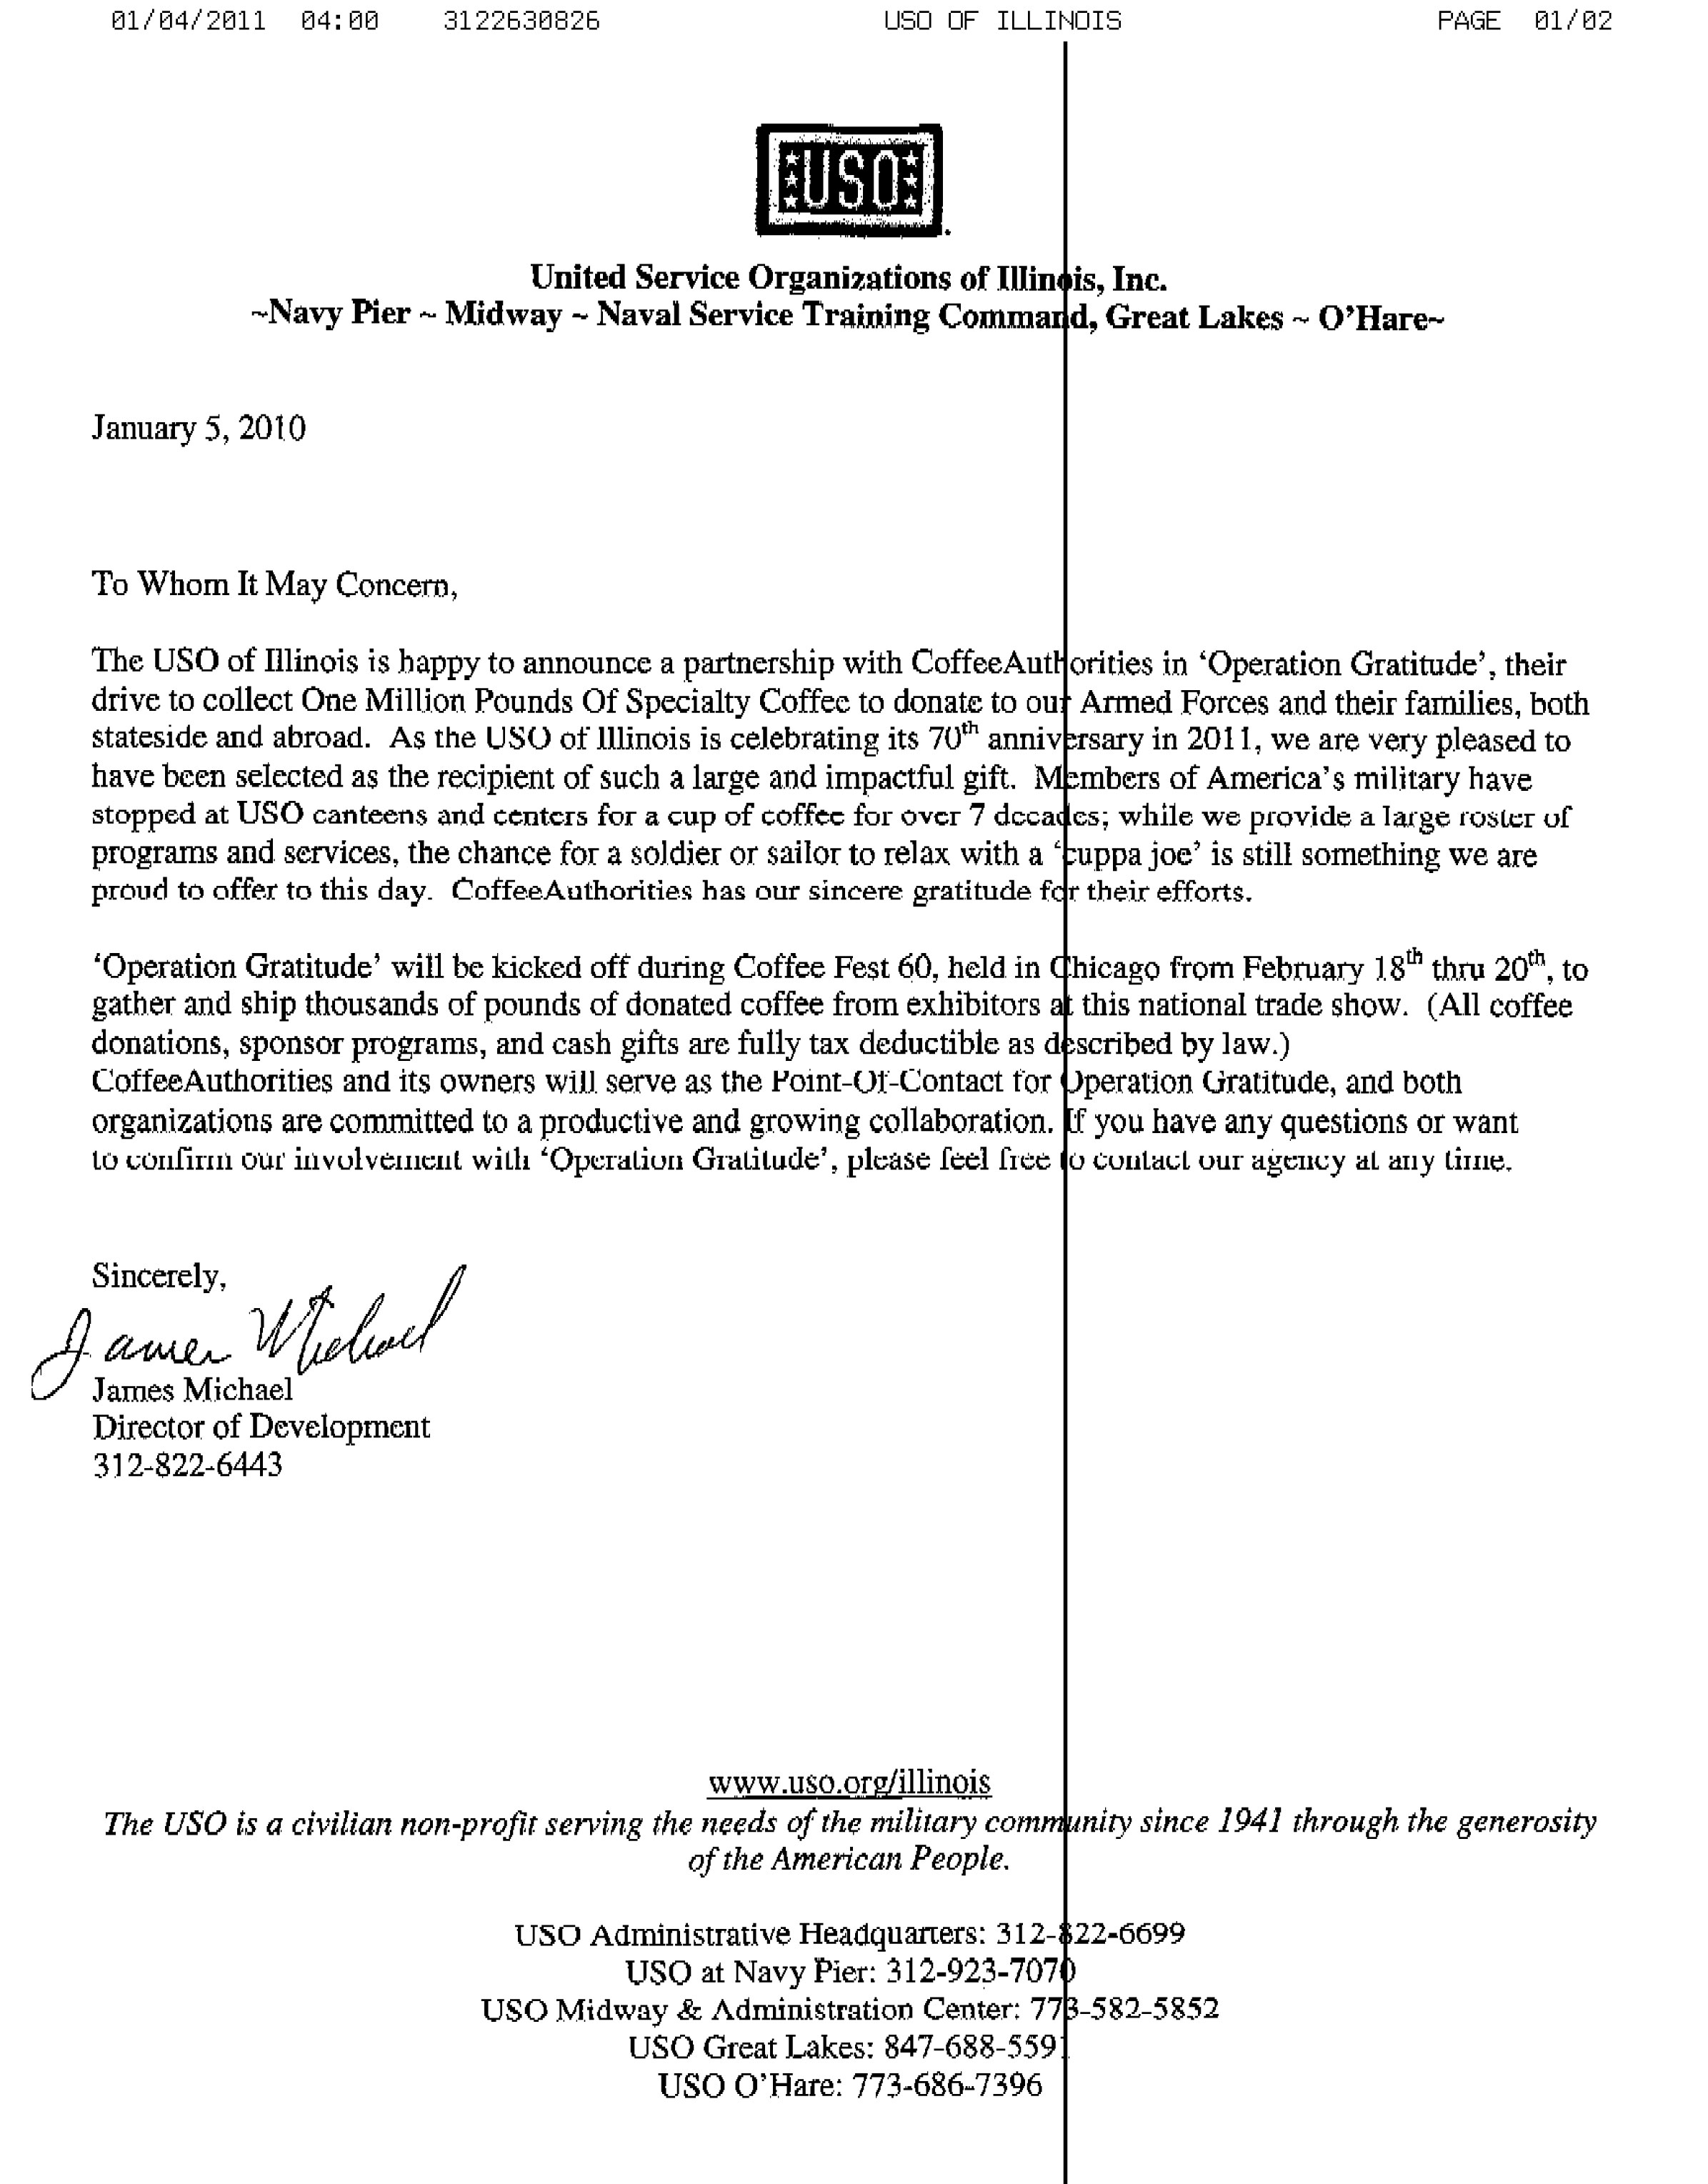 Coffeeauthorities official uso partnership letter to support our coffeeauthorities official uso partnership letter to support our efforts to collect one million pounds of coffee for our troops thecheapjerseys Choice Image